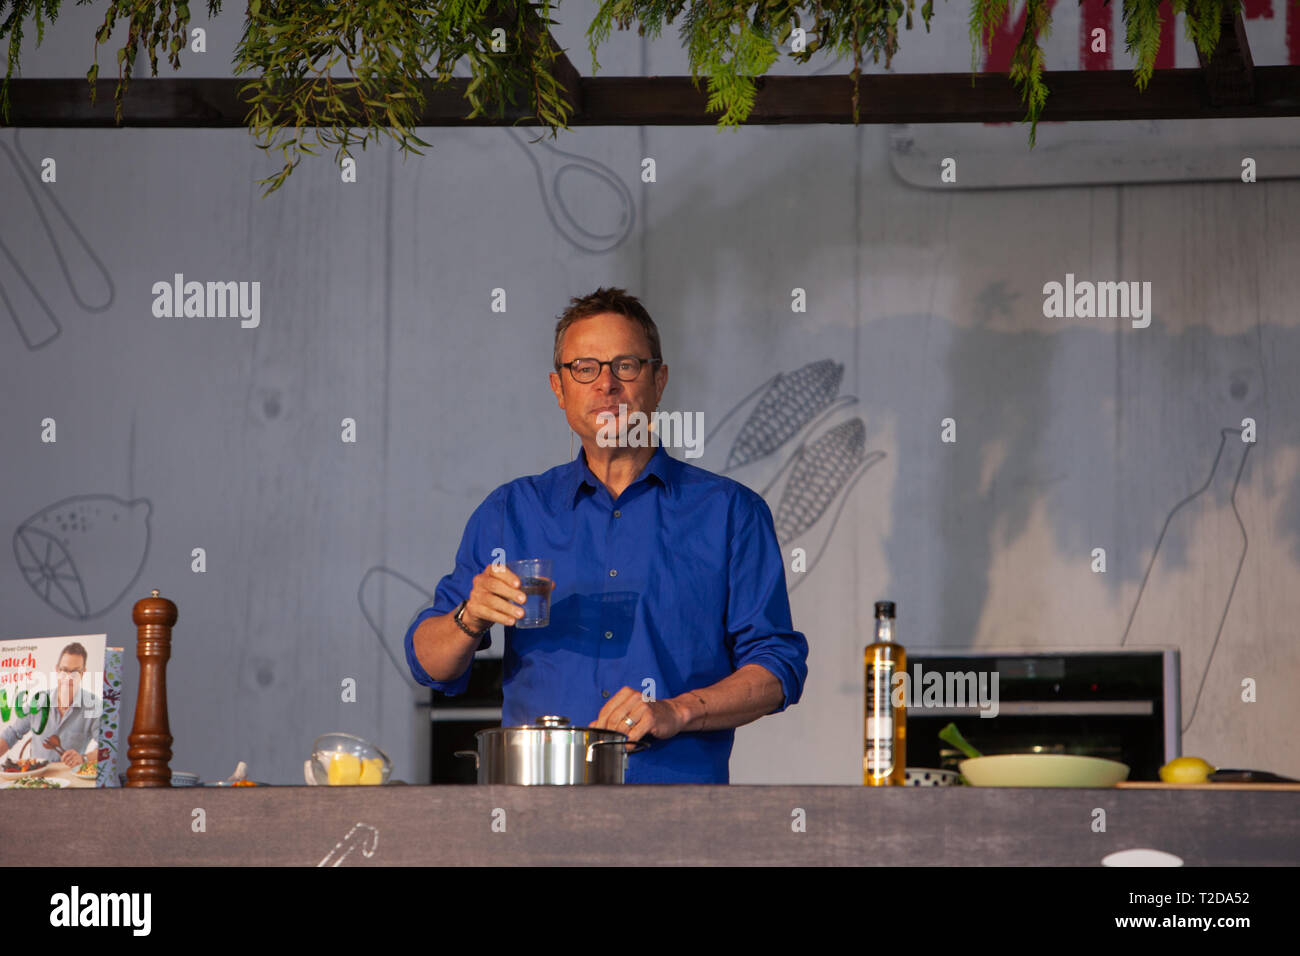 Hugh Fearnley-Whittingstall addresses an audience as he gives a cookery demostration at Taste of Dublin Food Festival. - Stock Image